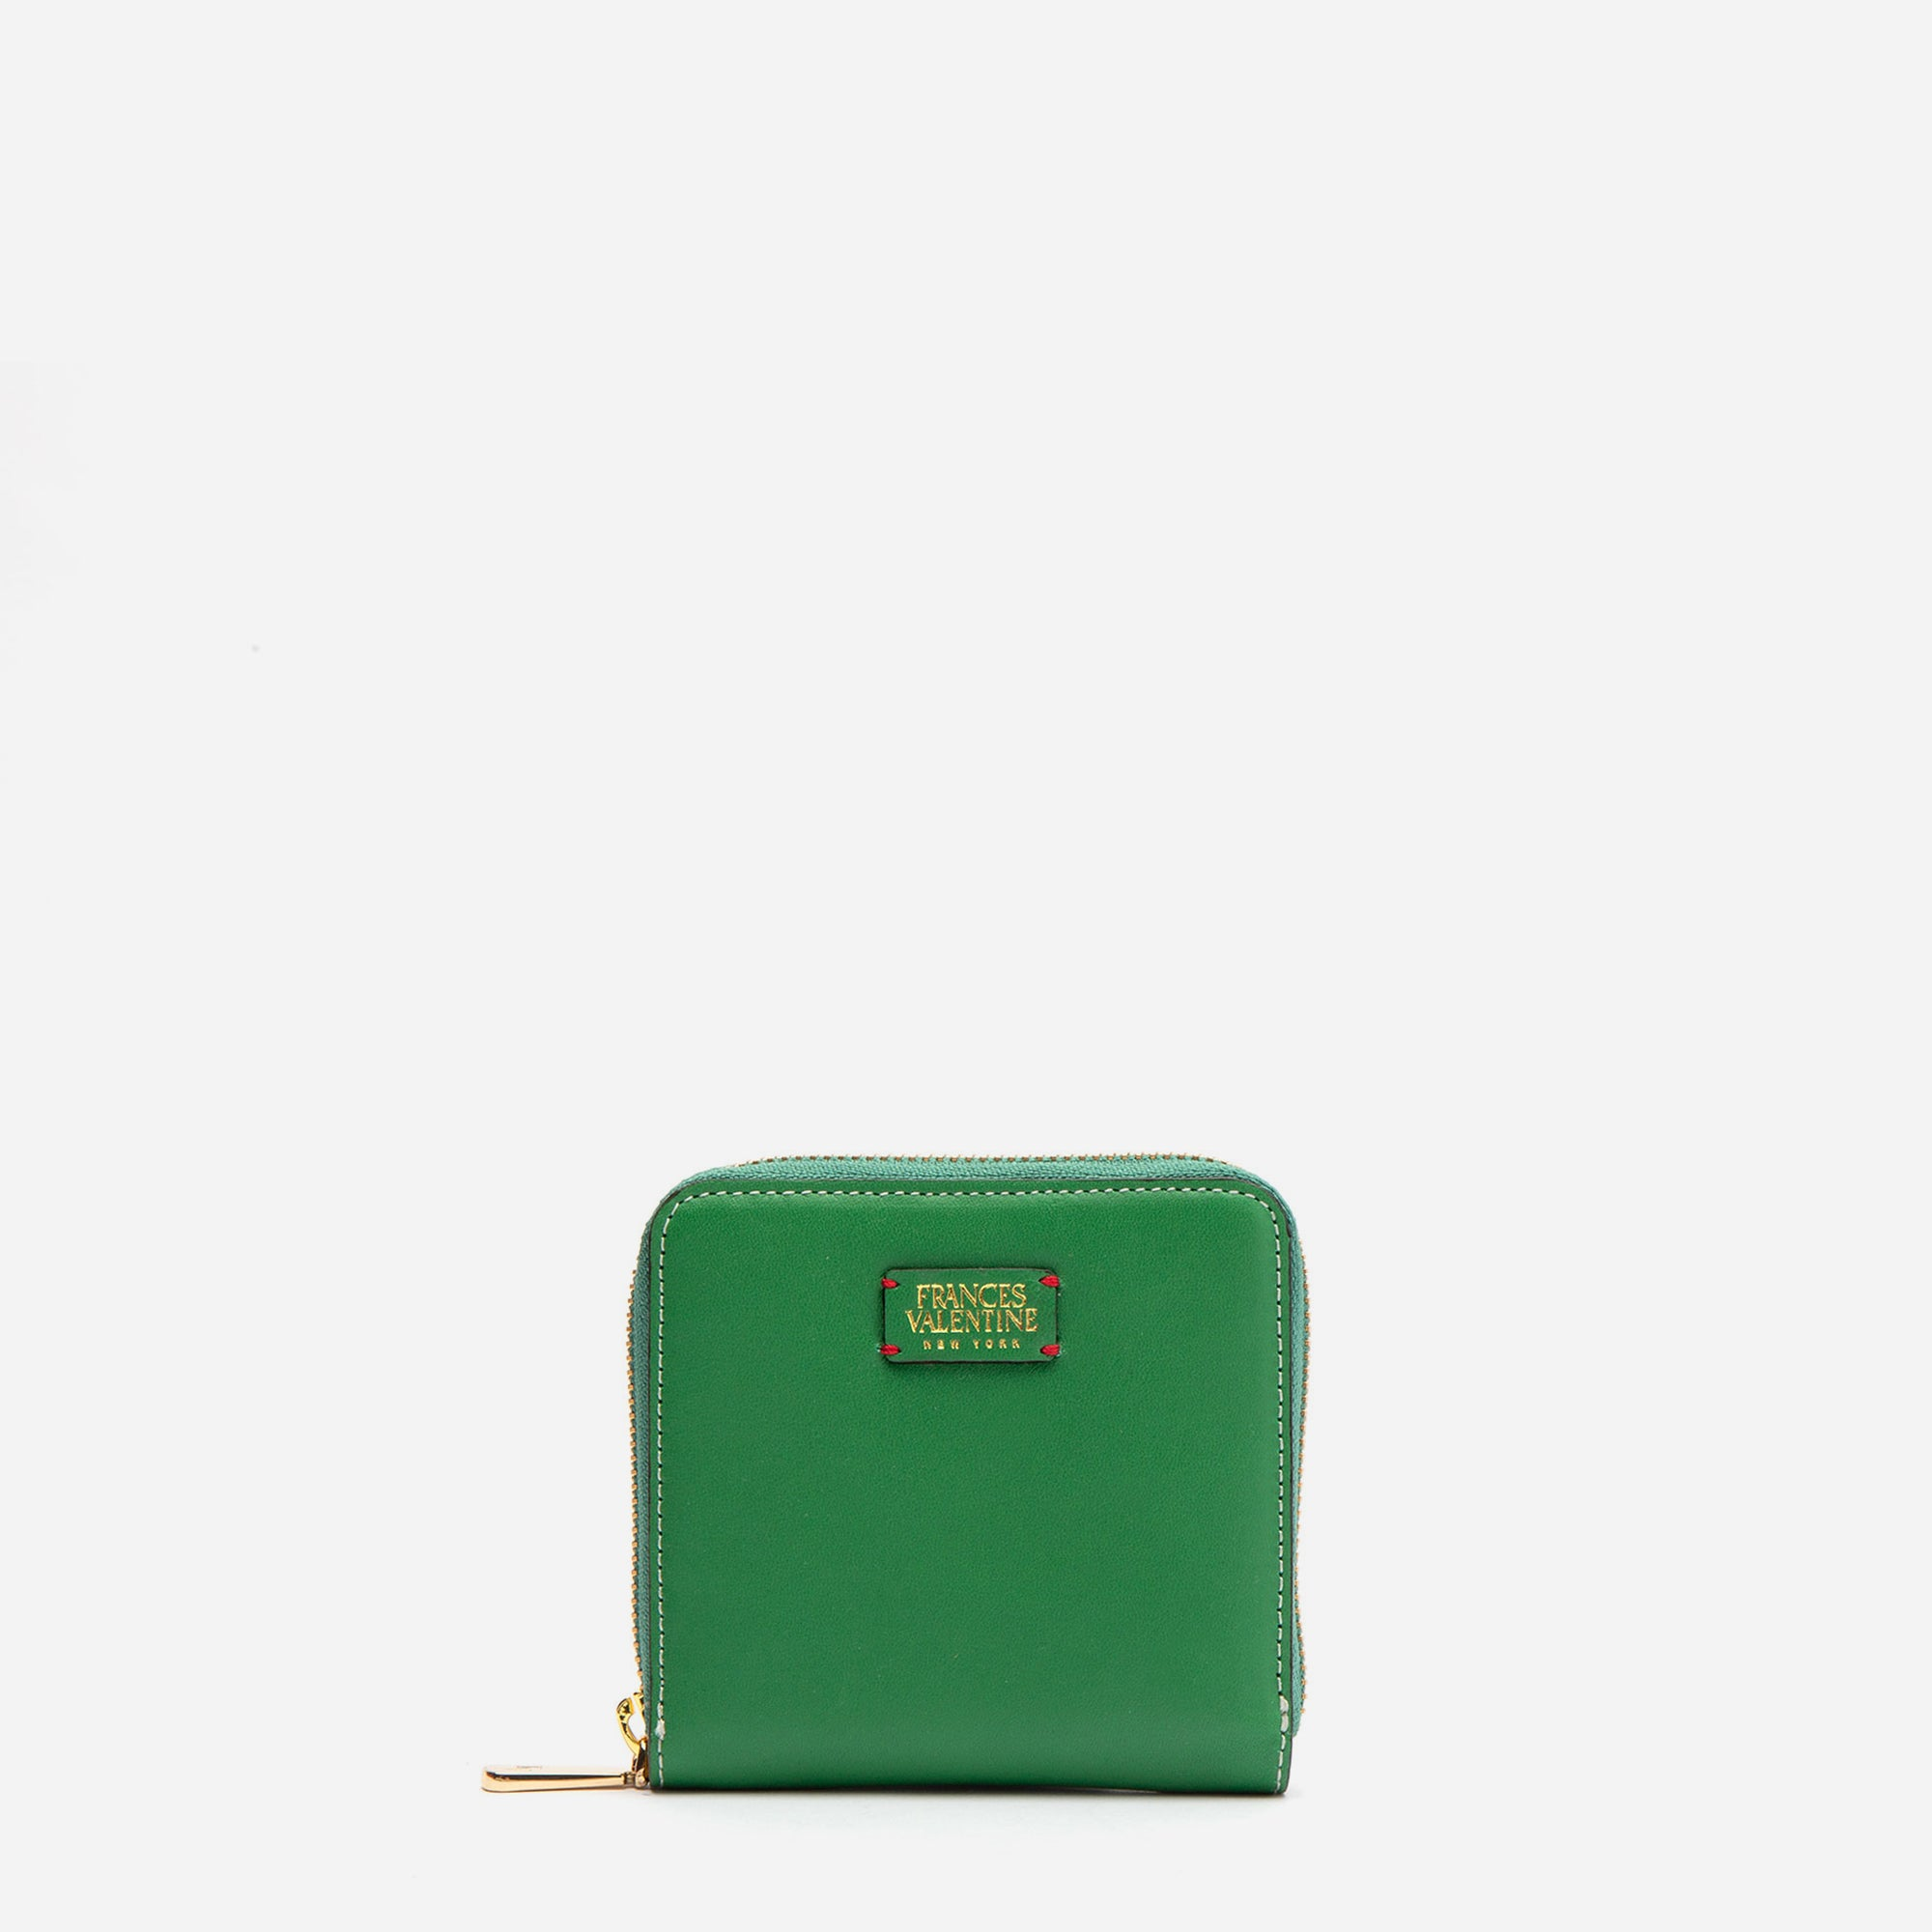 Roosevelt Small Zip Wallet Green Yellow - Frances Valentine